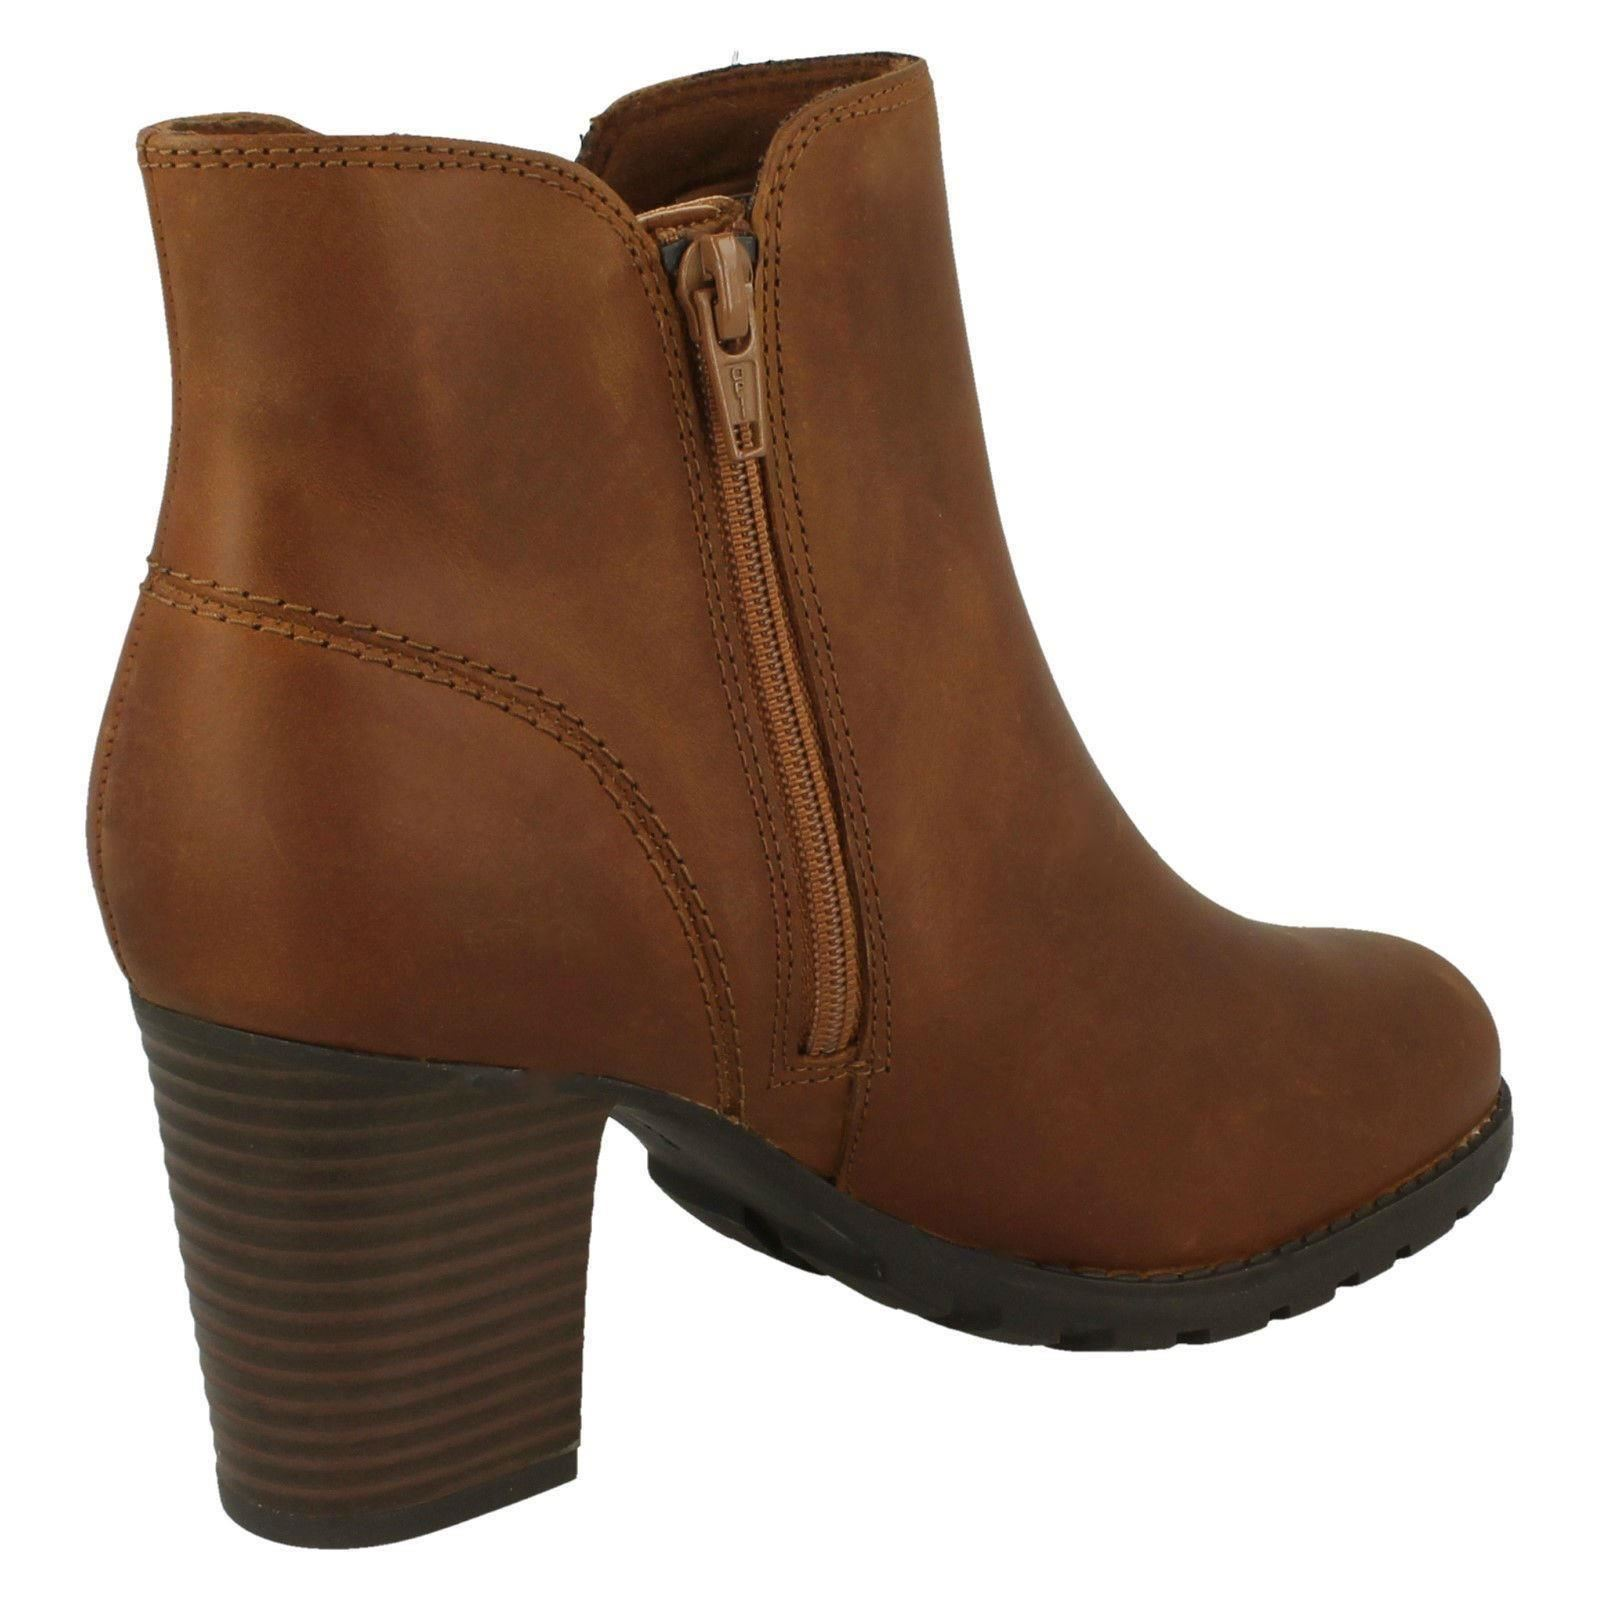 Womens Clarks-Zip Up Ankle Boots Verona Trish